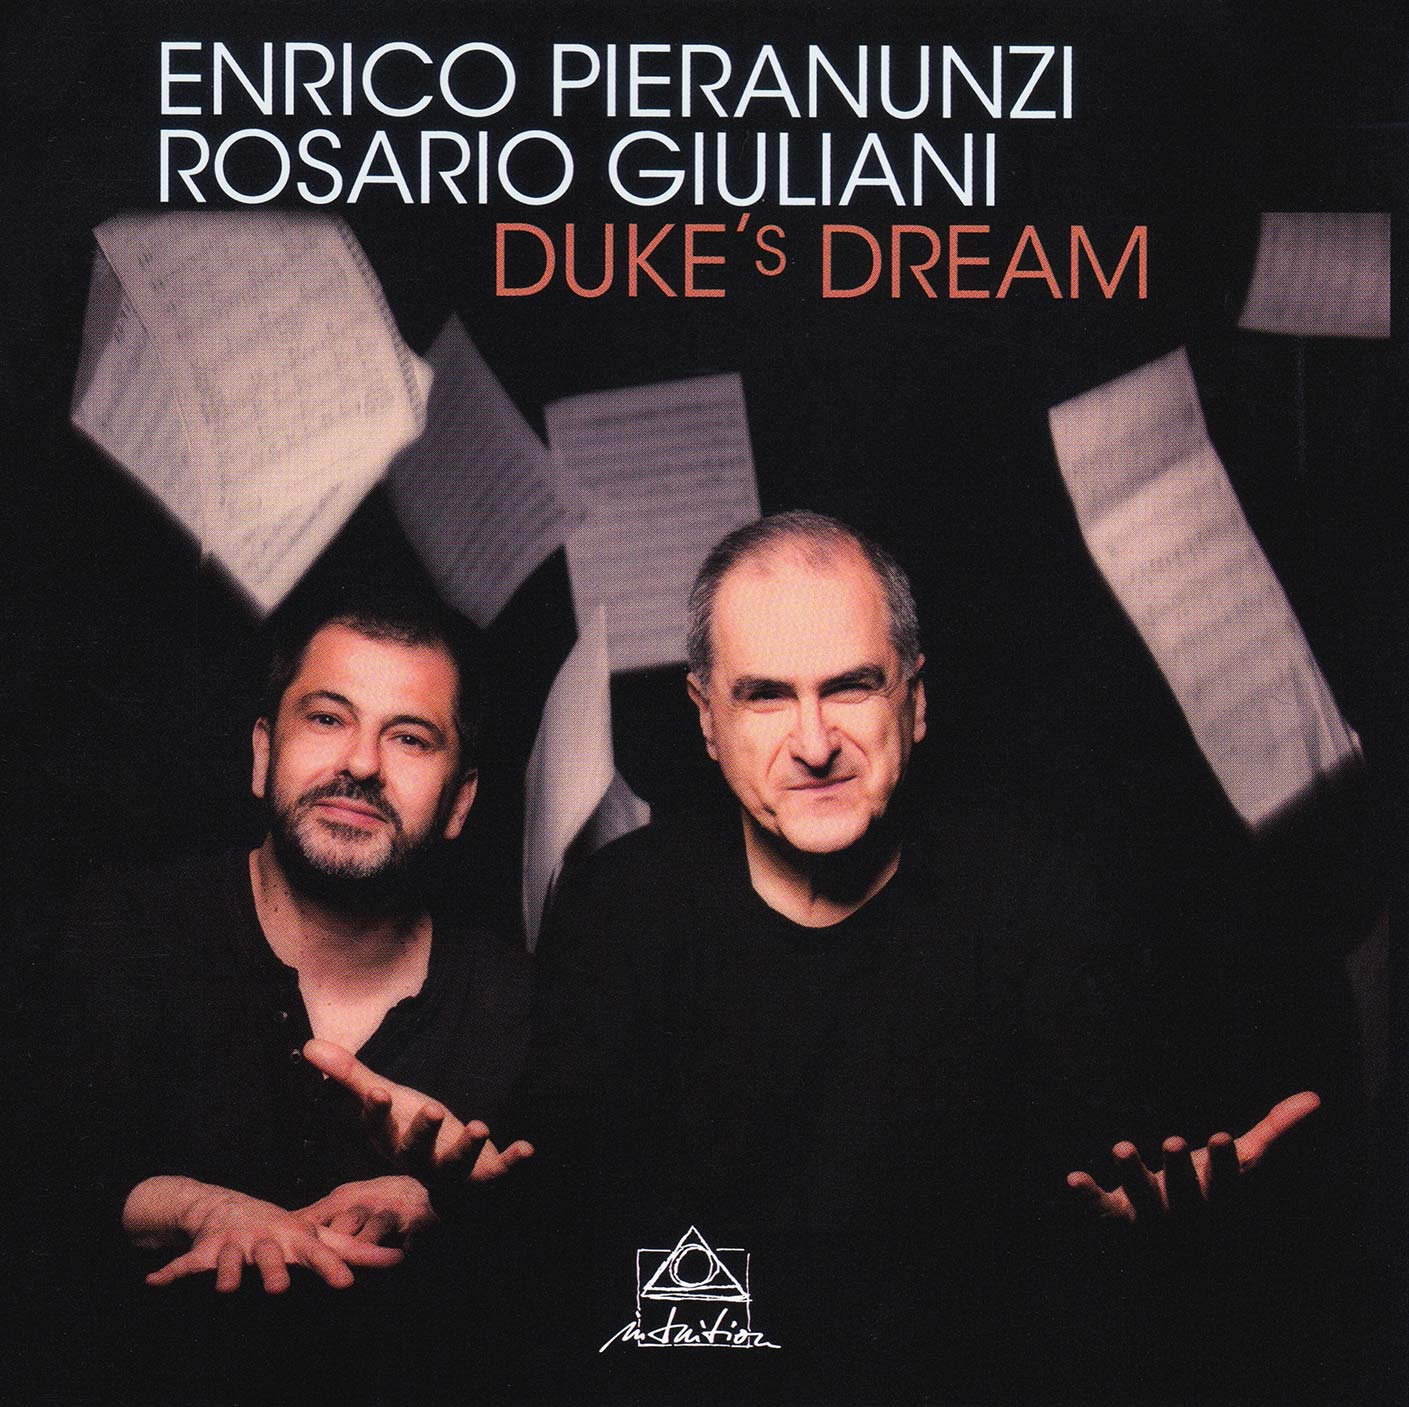 DUKE'S DREAM - PIERANUNZI GIULIANI CD COVER